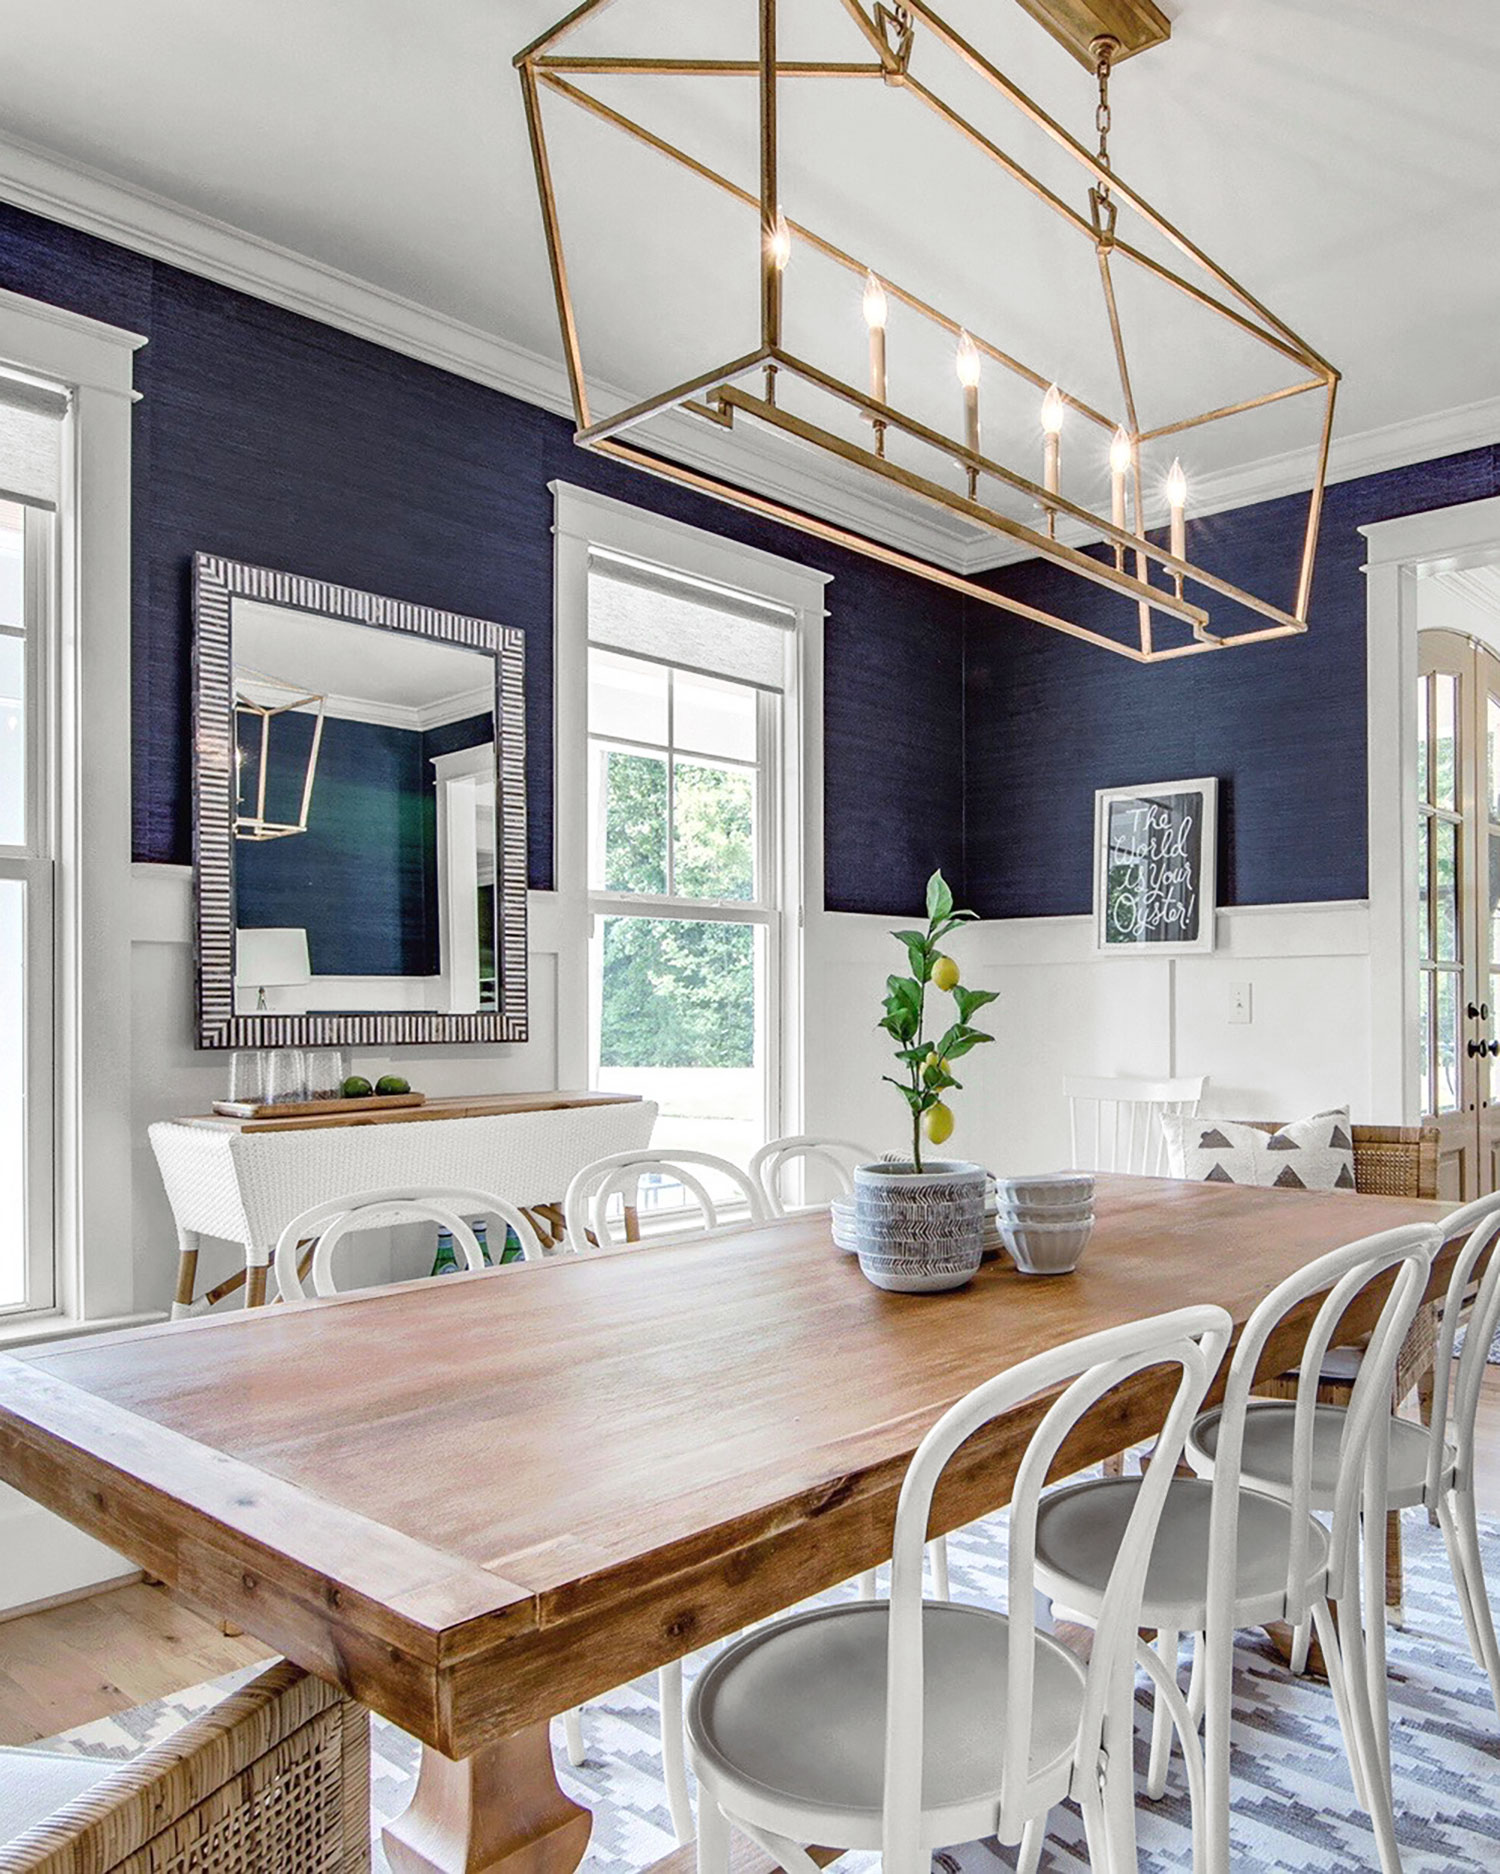 Farmhouse Style Dining Room in Blue and White from Chrissy Serrano